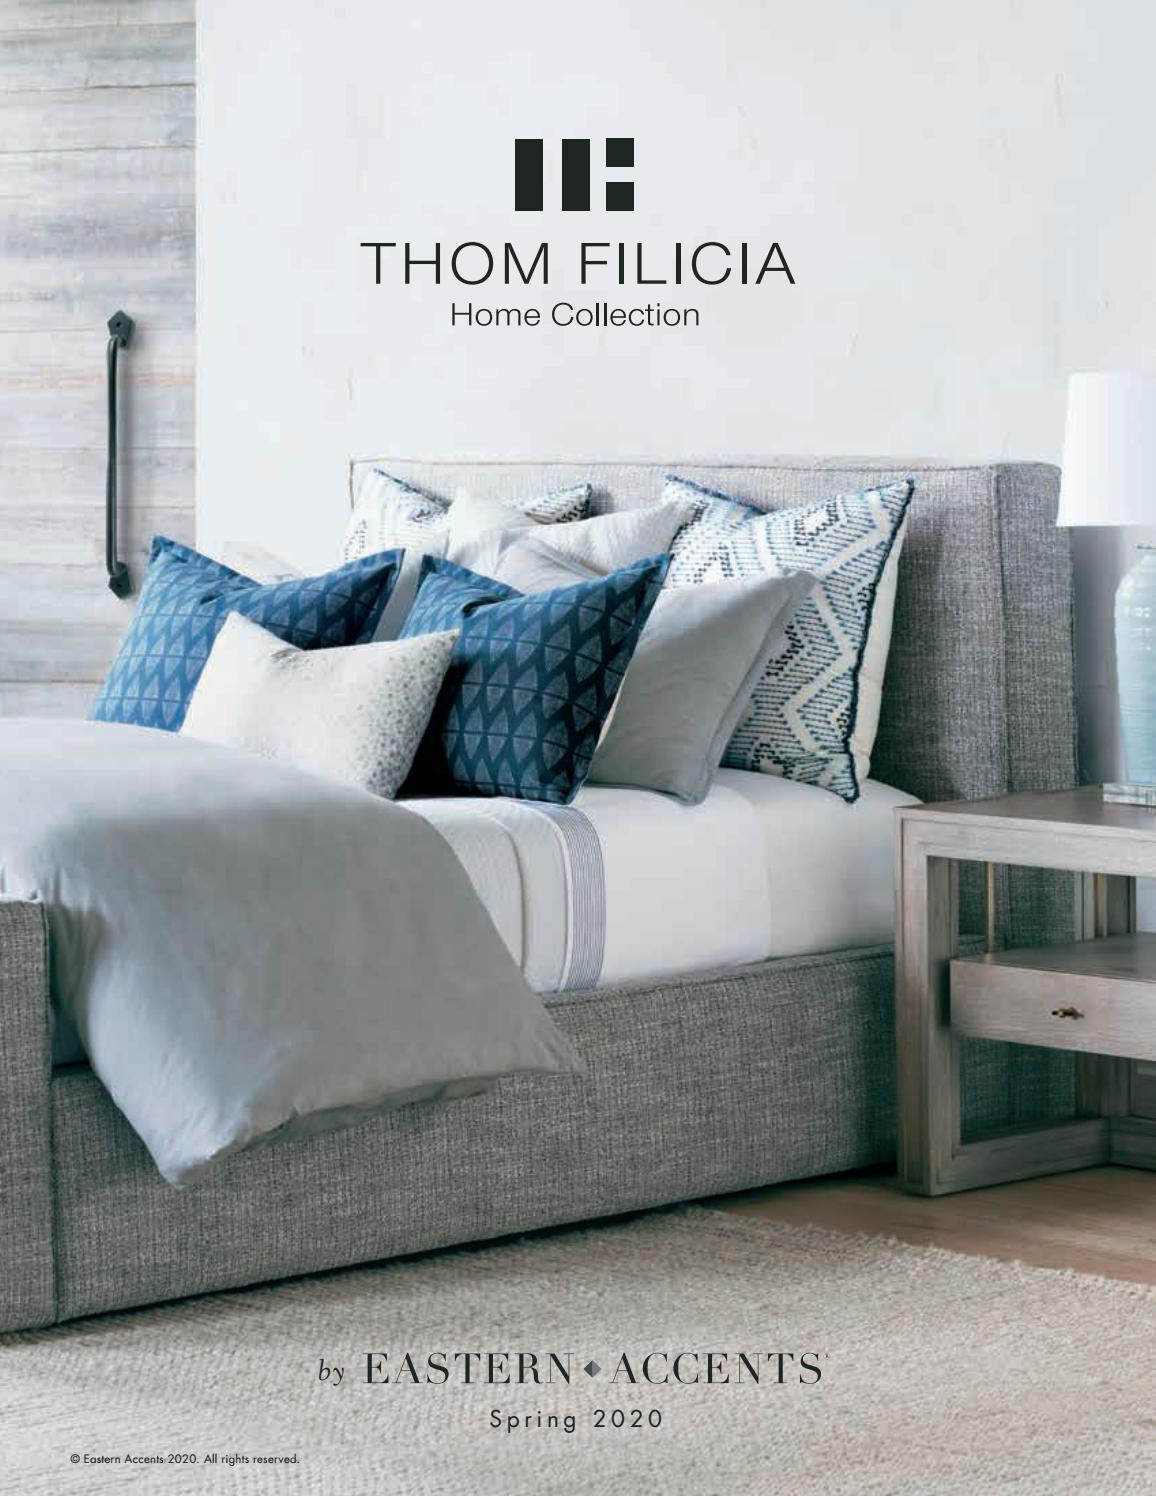 Thom Filicia Home Collection By Eastern Accents Issuu